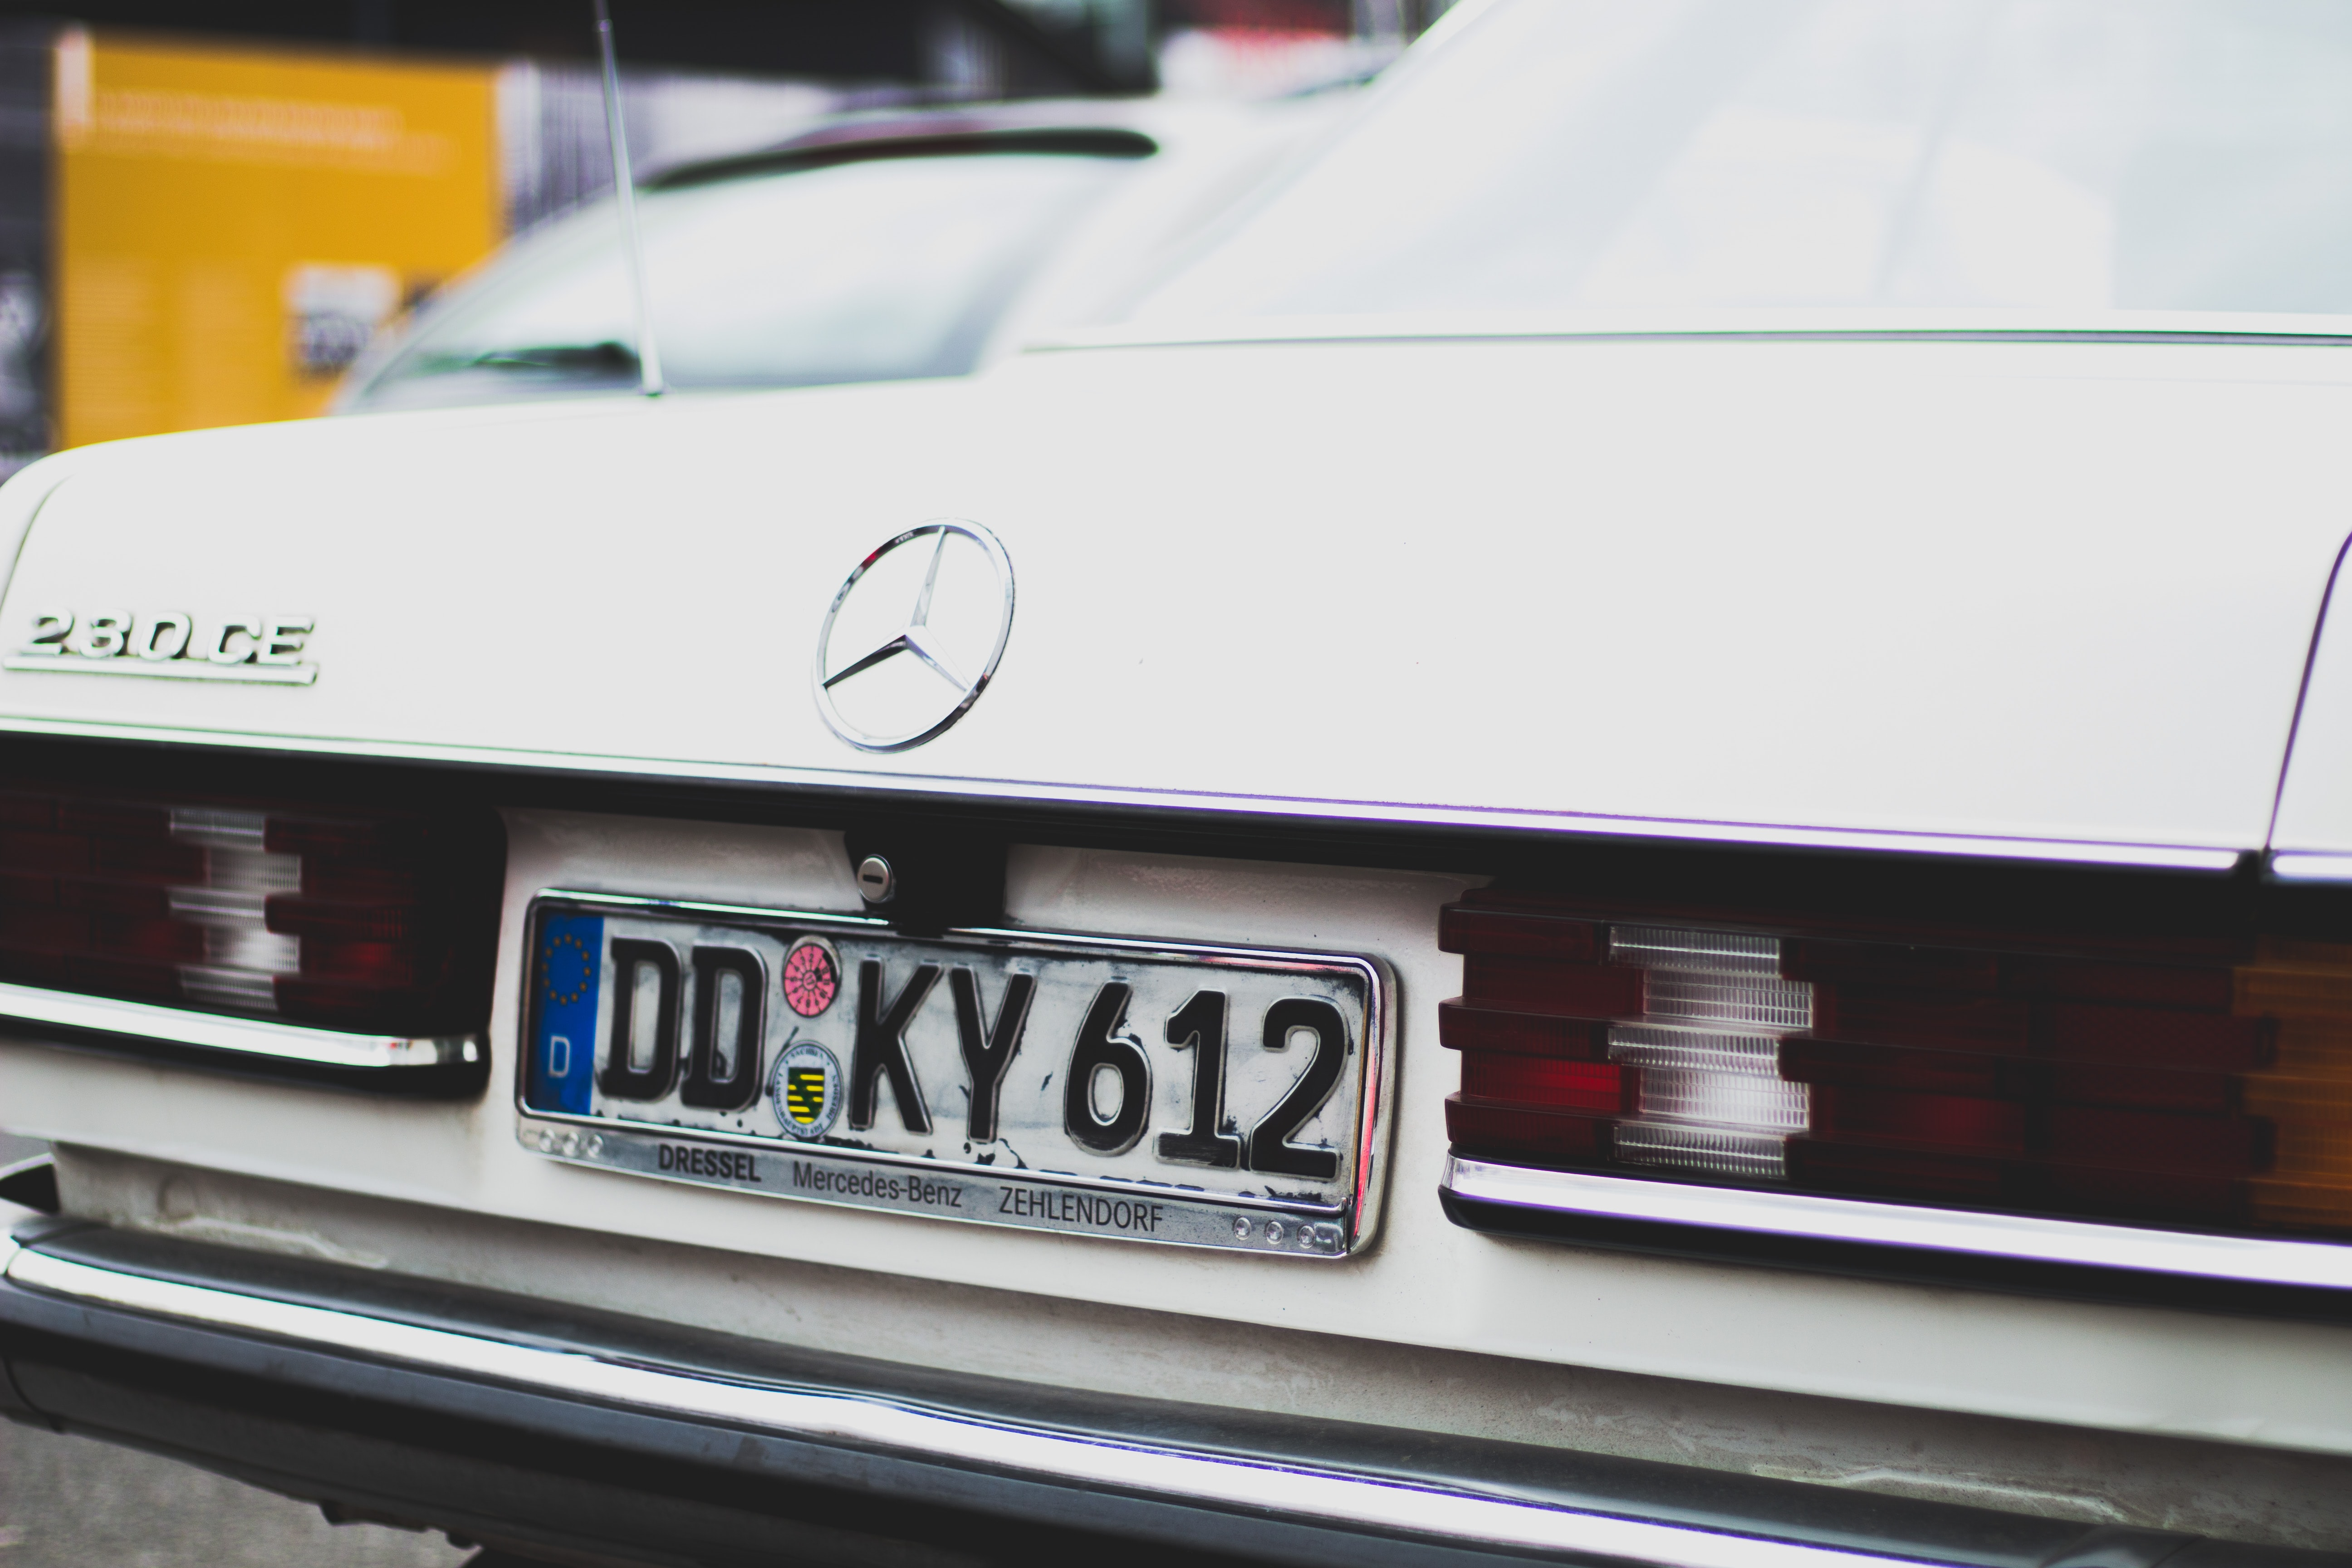 white Mercedez Benz car with license plate DD KY 612